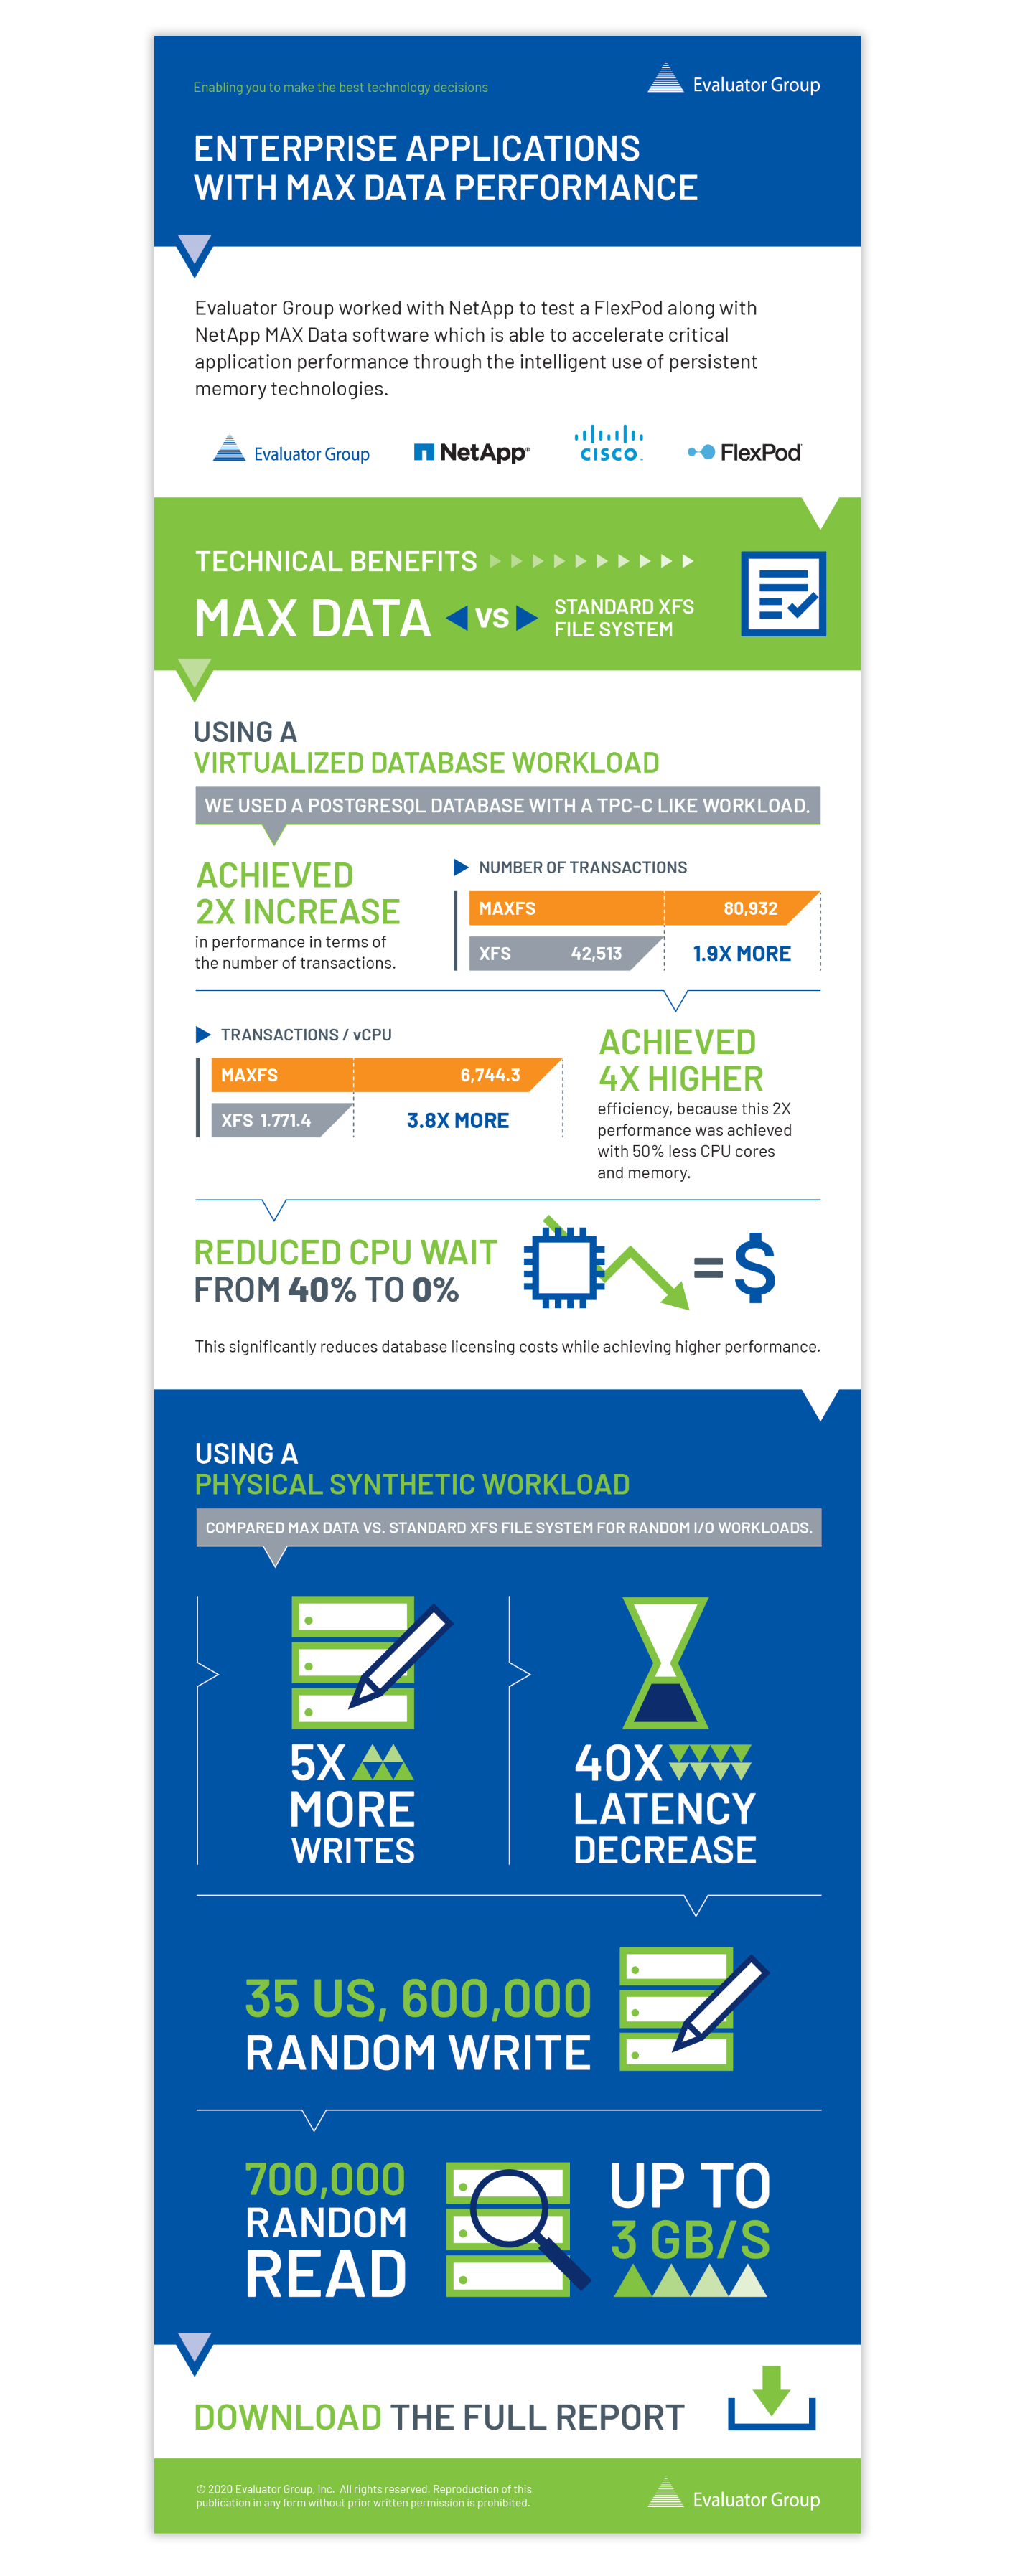 Technical Benefits Infographic